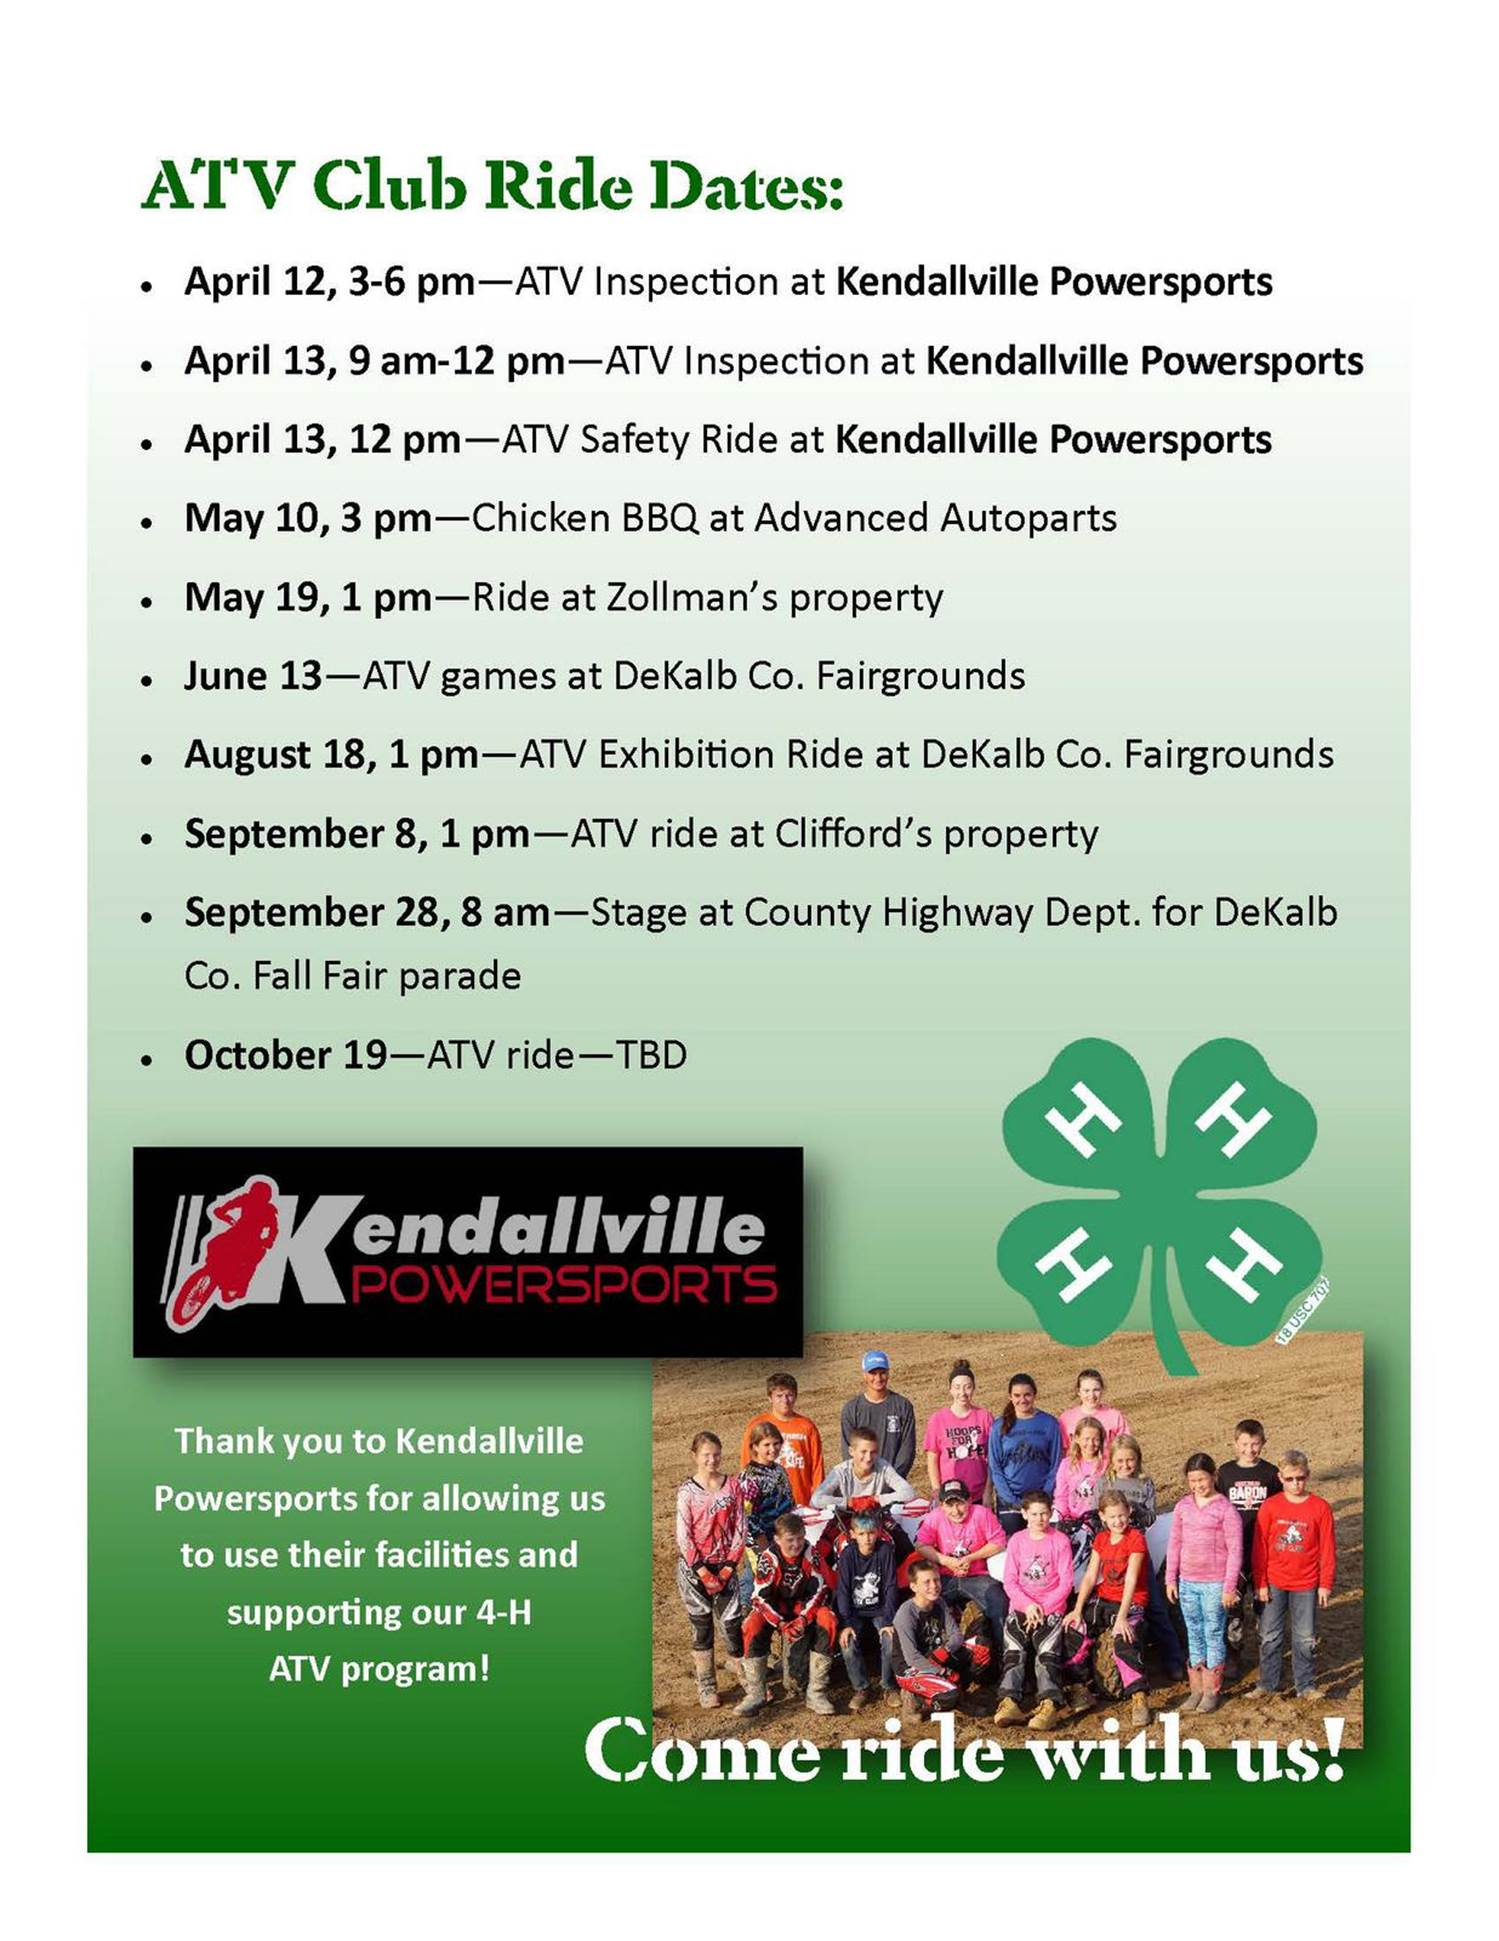 4H Extension Kendallville Powersports flyer_Page_2